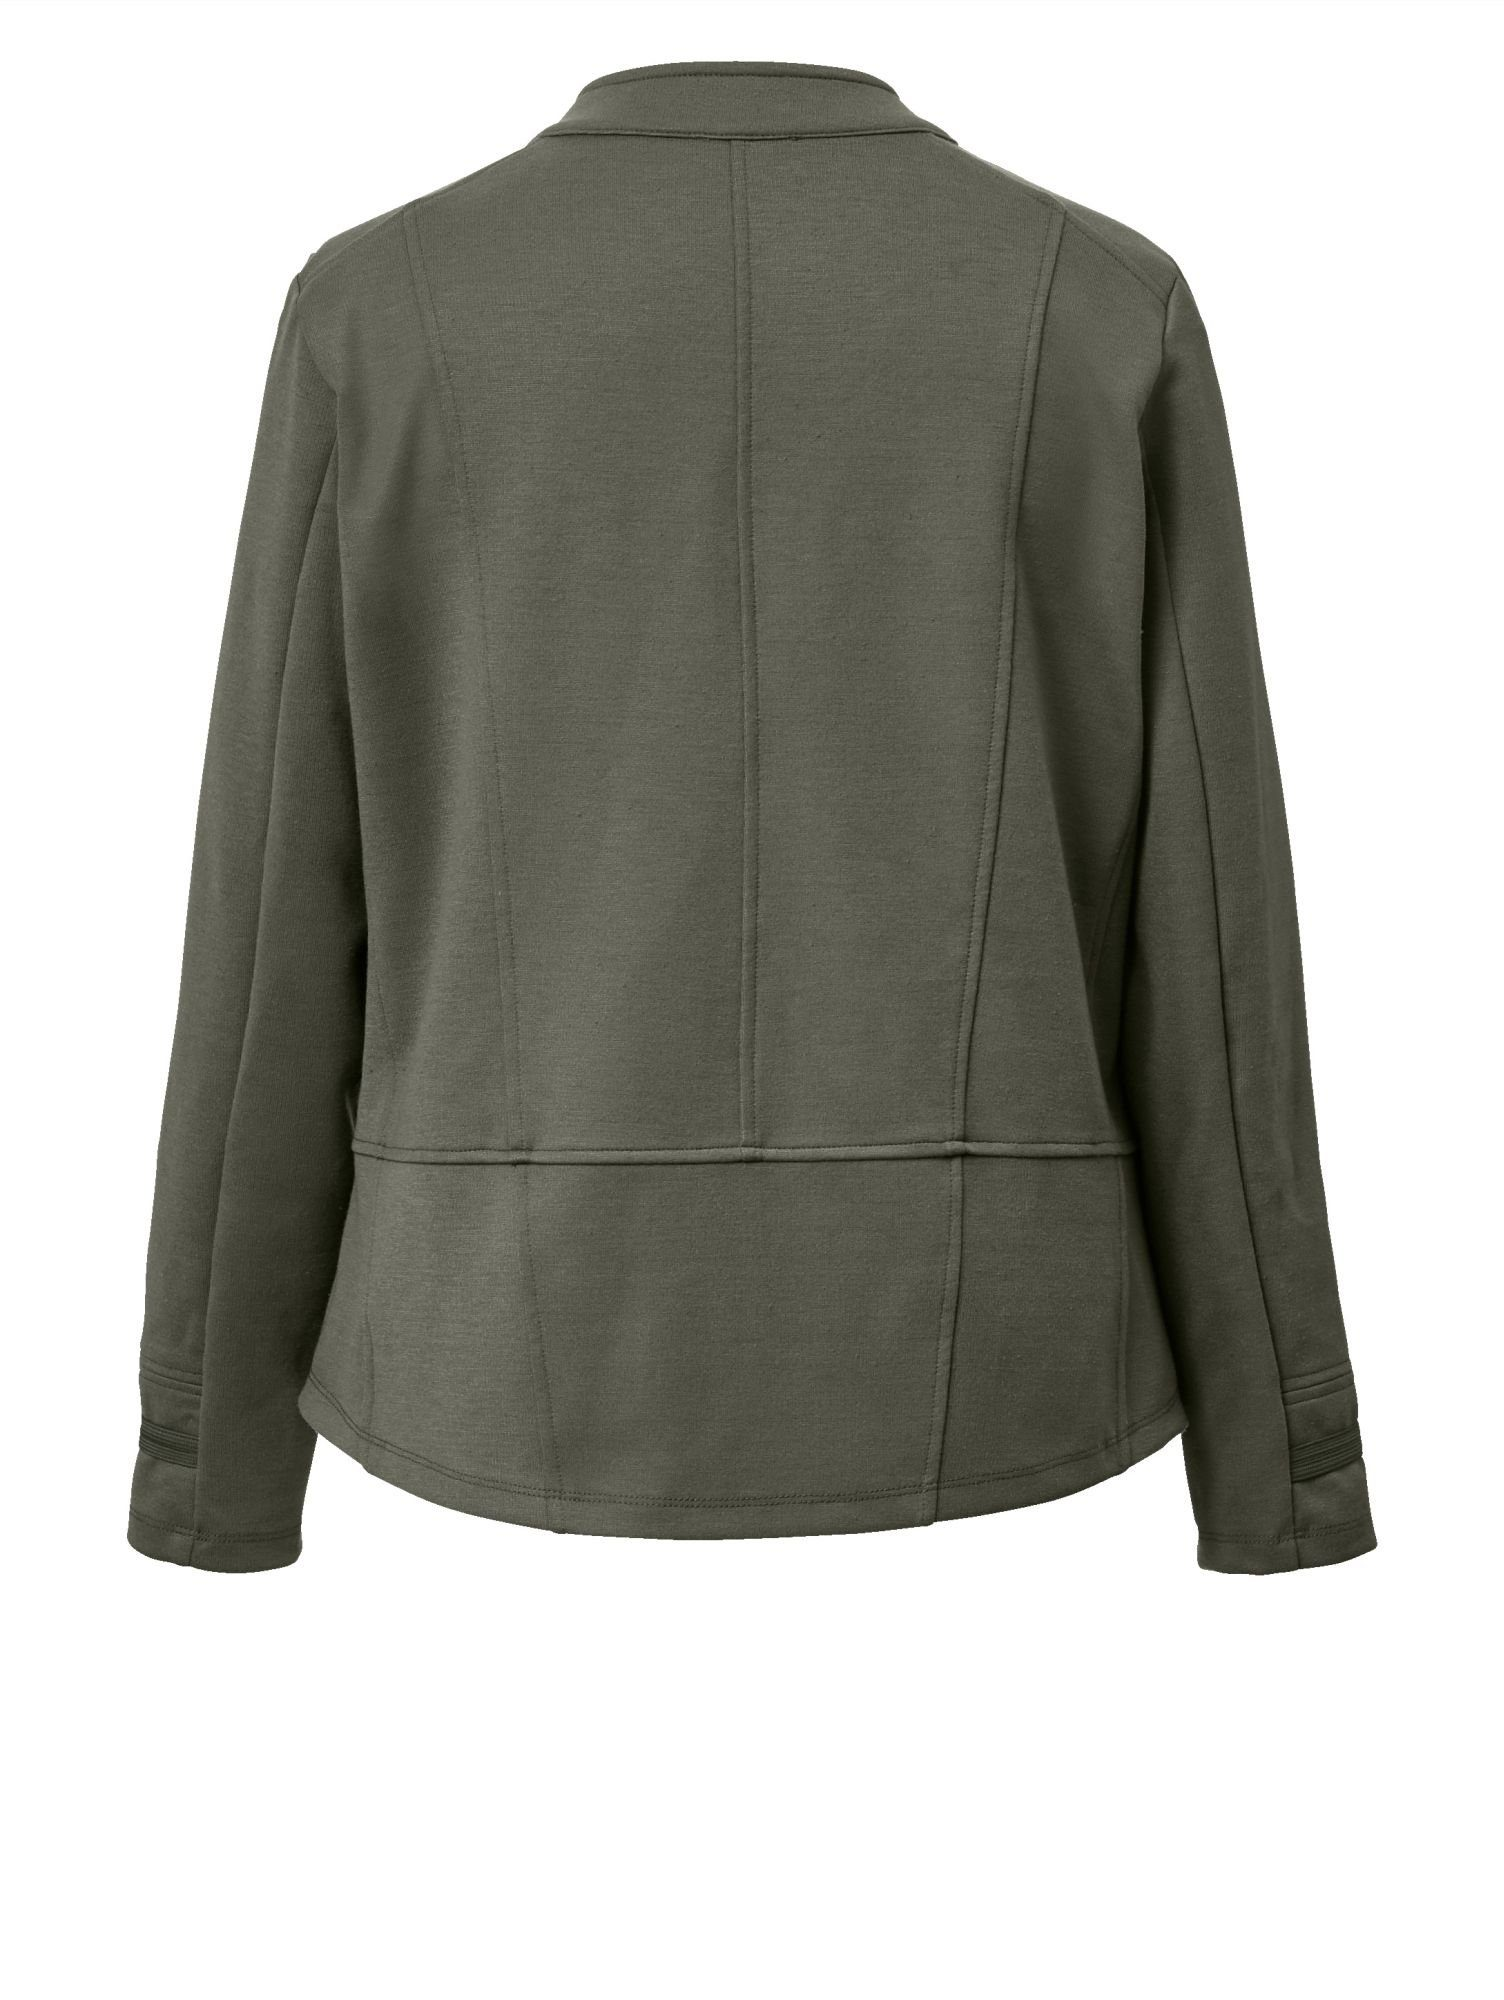 Angel of Style by Happy Size Jacke im Military Style online kaufen | OTTO